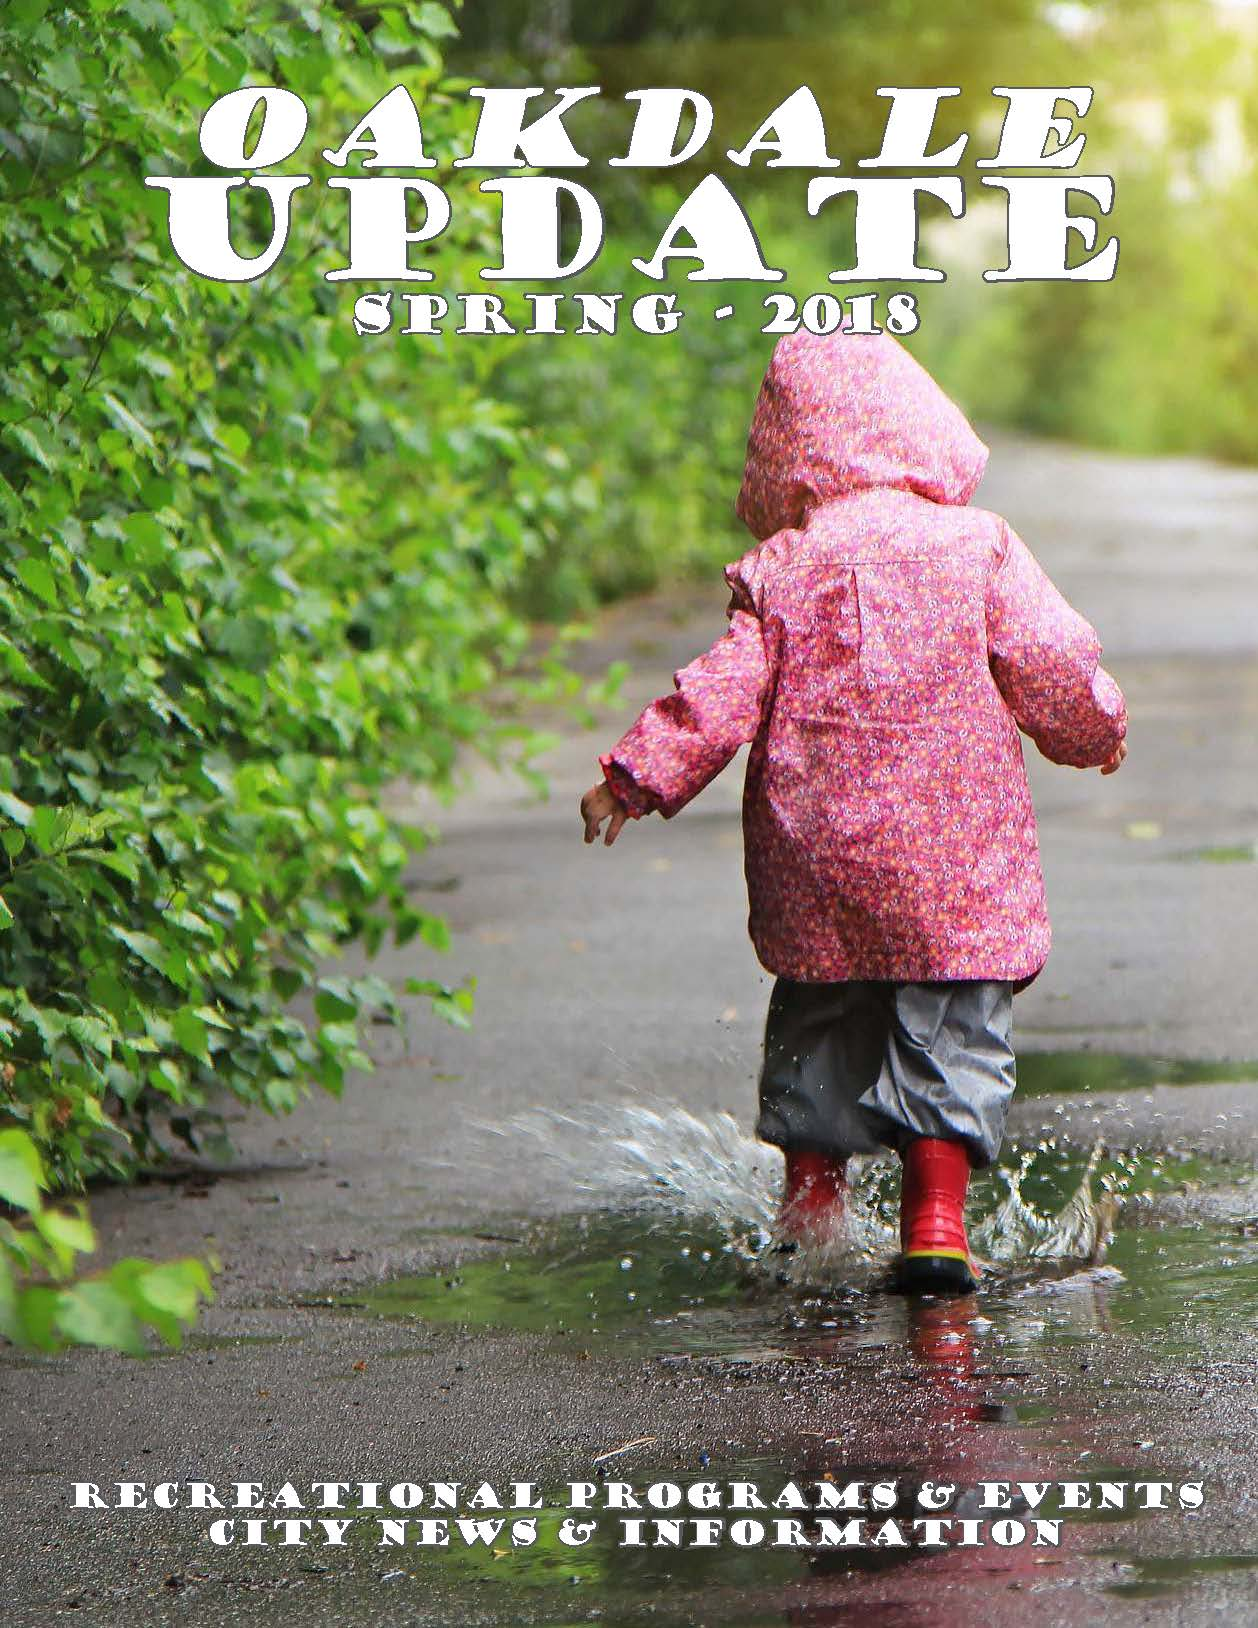 Cover of Oakdale Update Newsletter for Spring 2018 showing child in pink raincoat in puddle